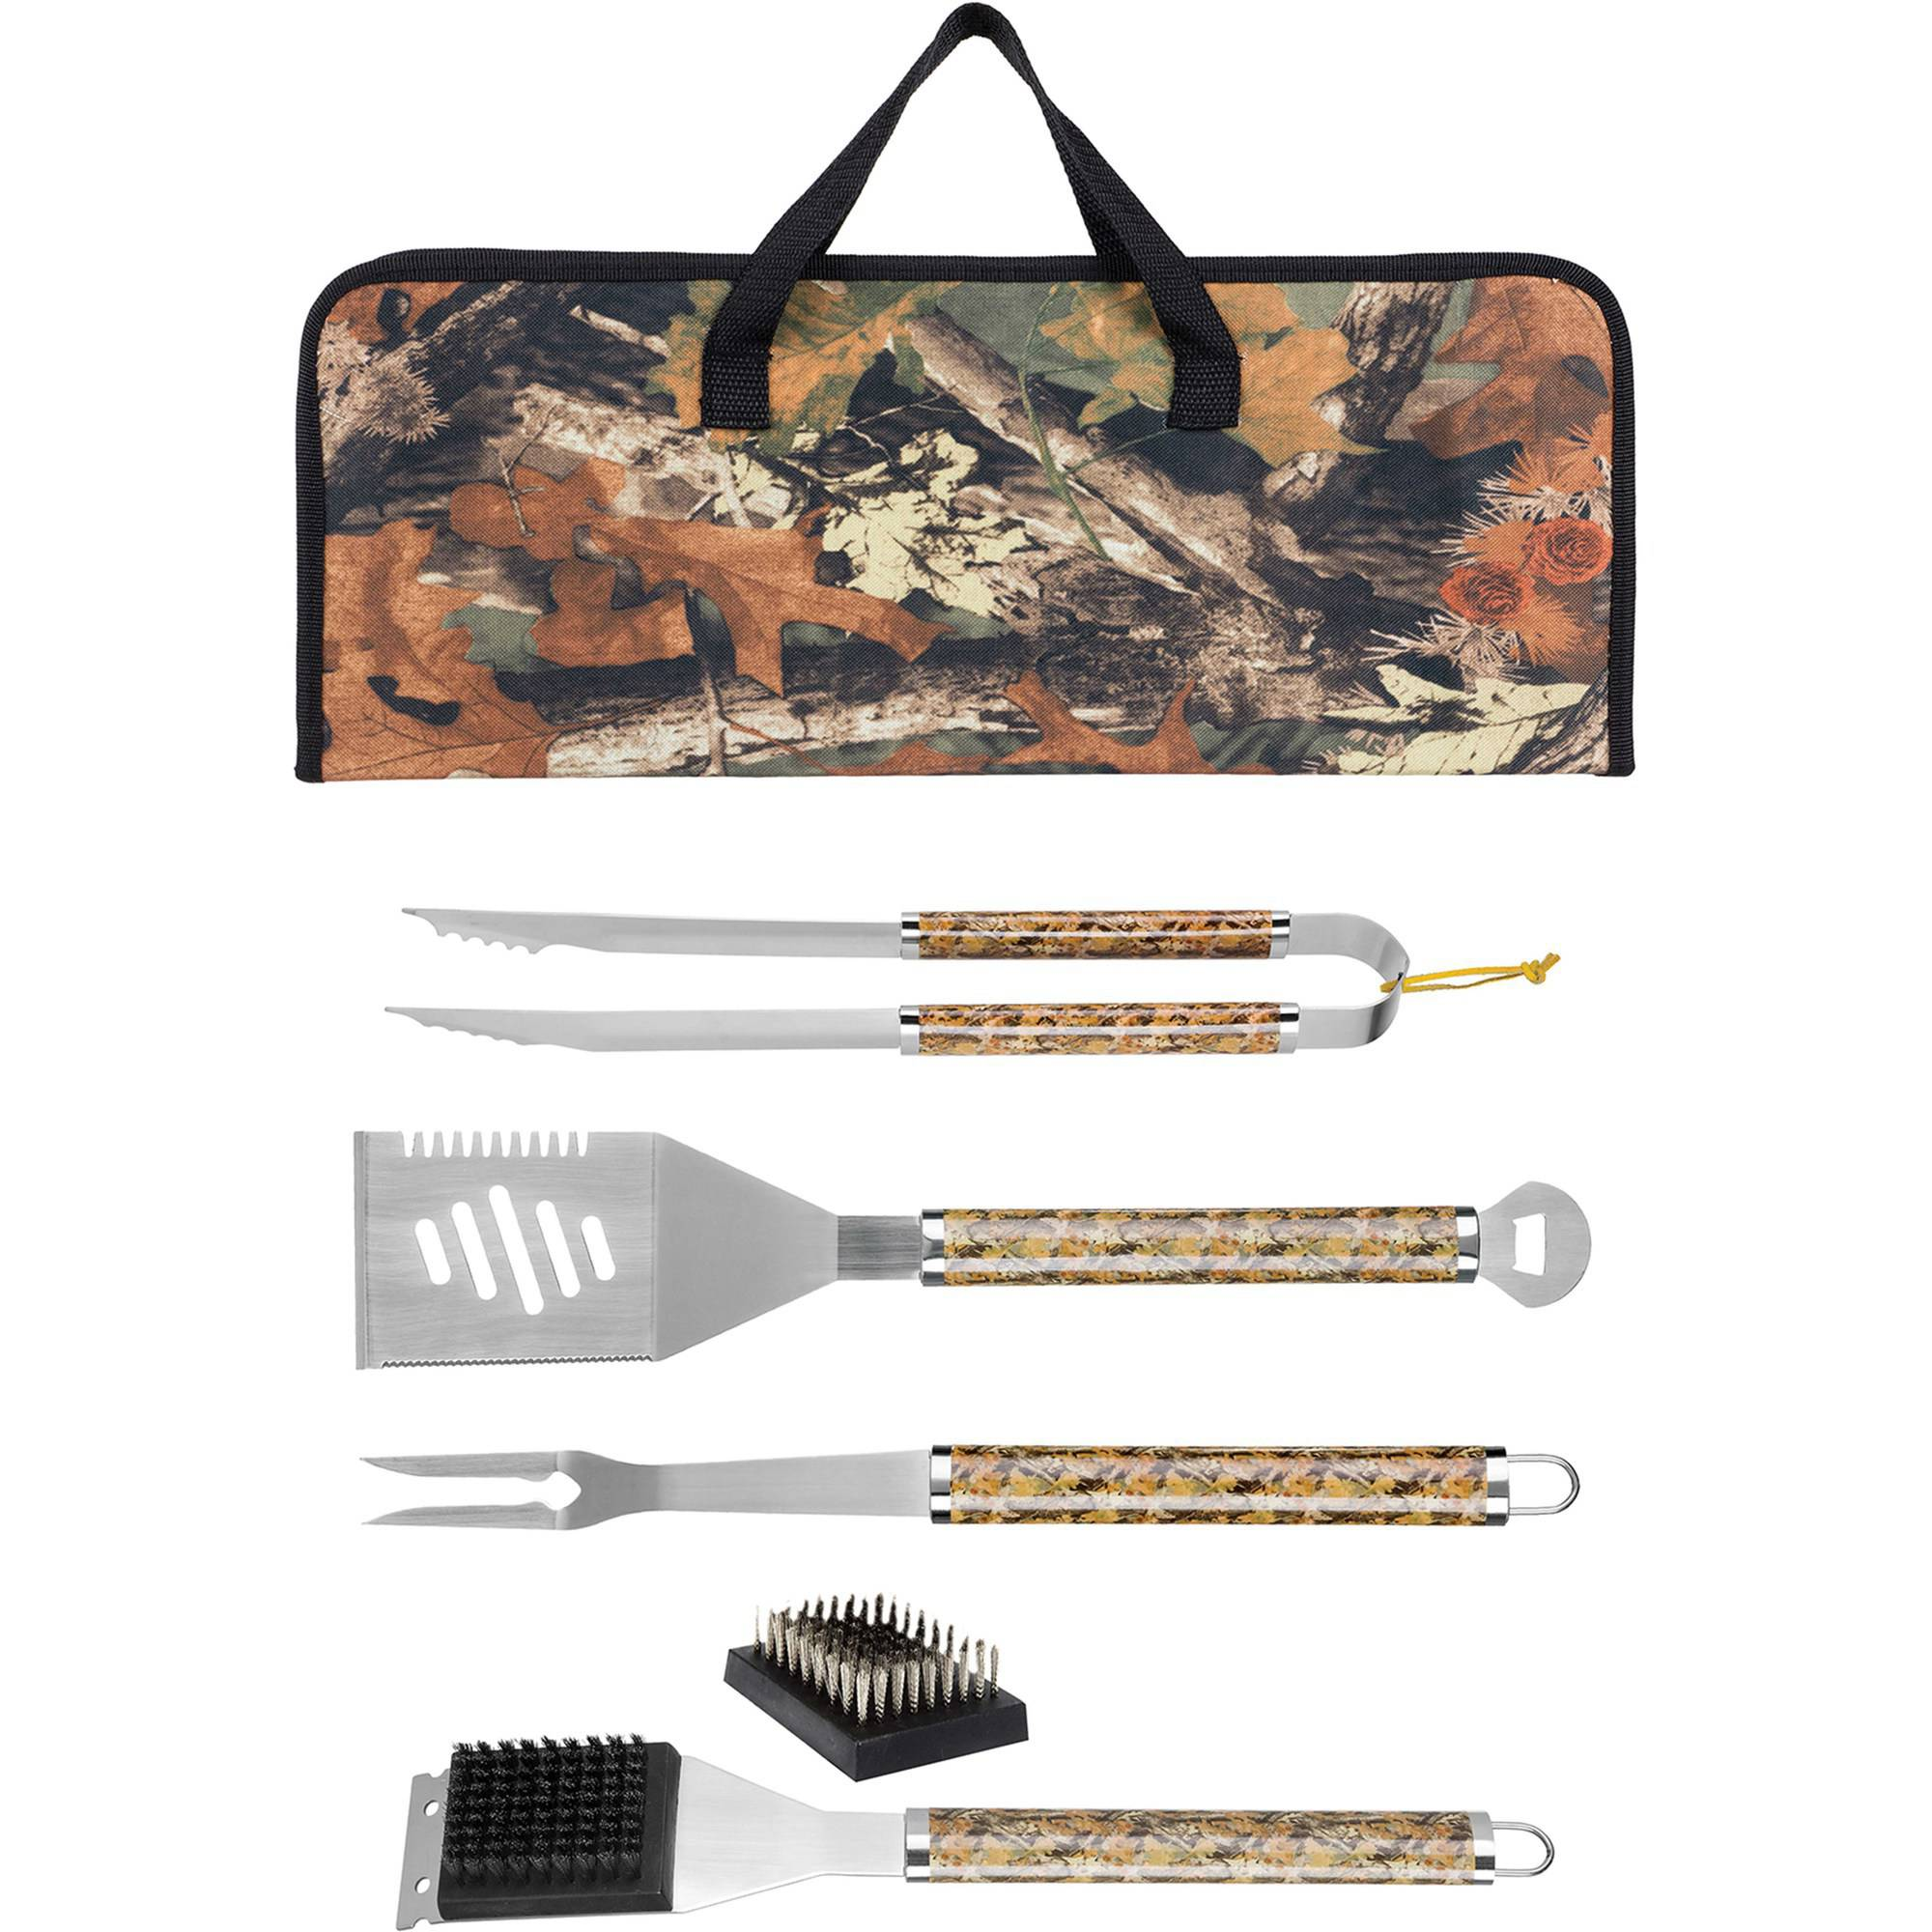 MR. Bar-B-Q Tool Set w/ Plastic Camo Handles in Nylon Camo Bag, 6 pc